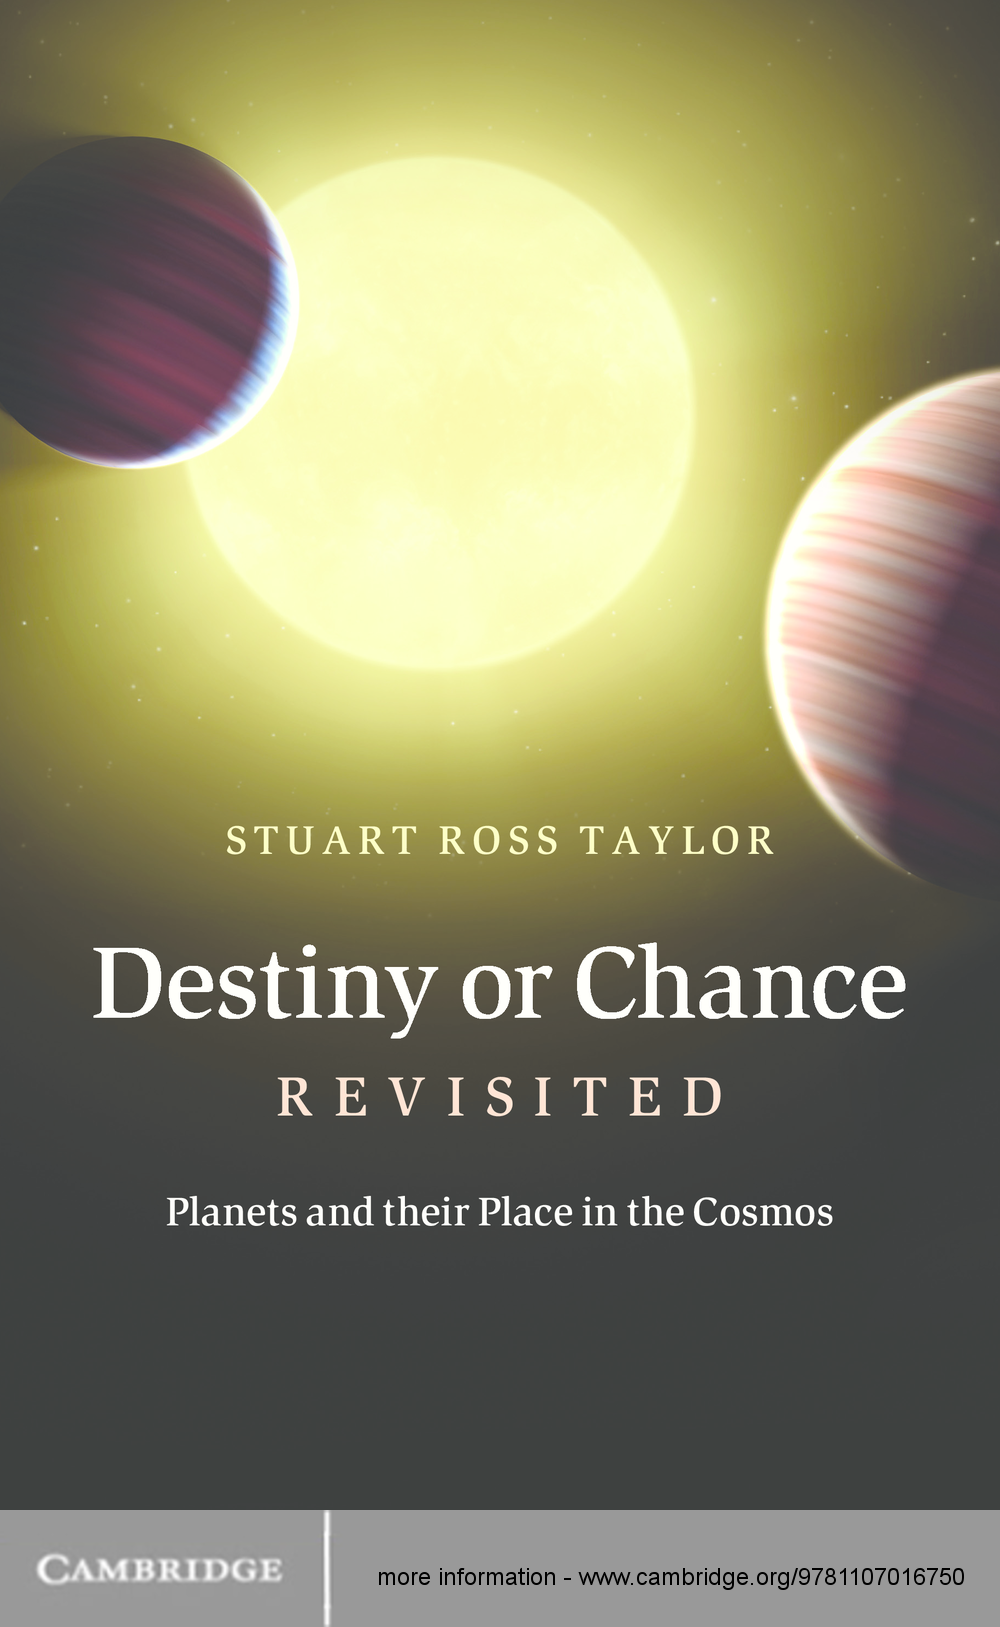 Destiny or Chance Revisited Planets and their Place in the Cosmos